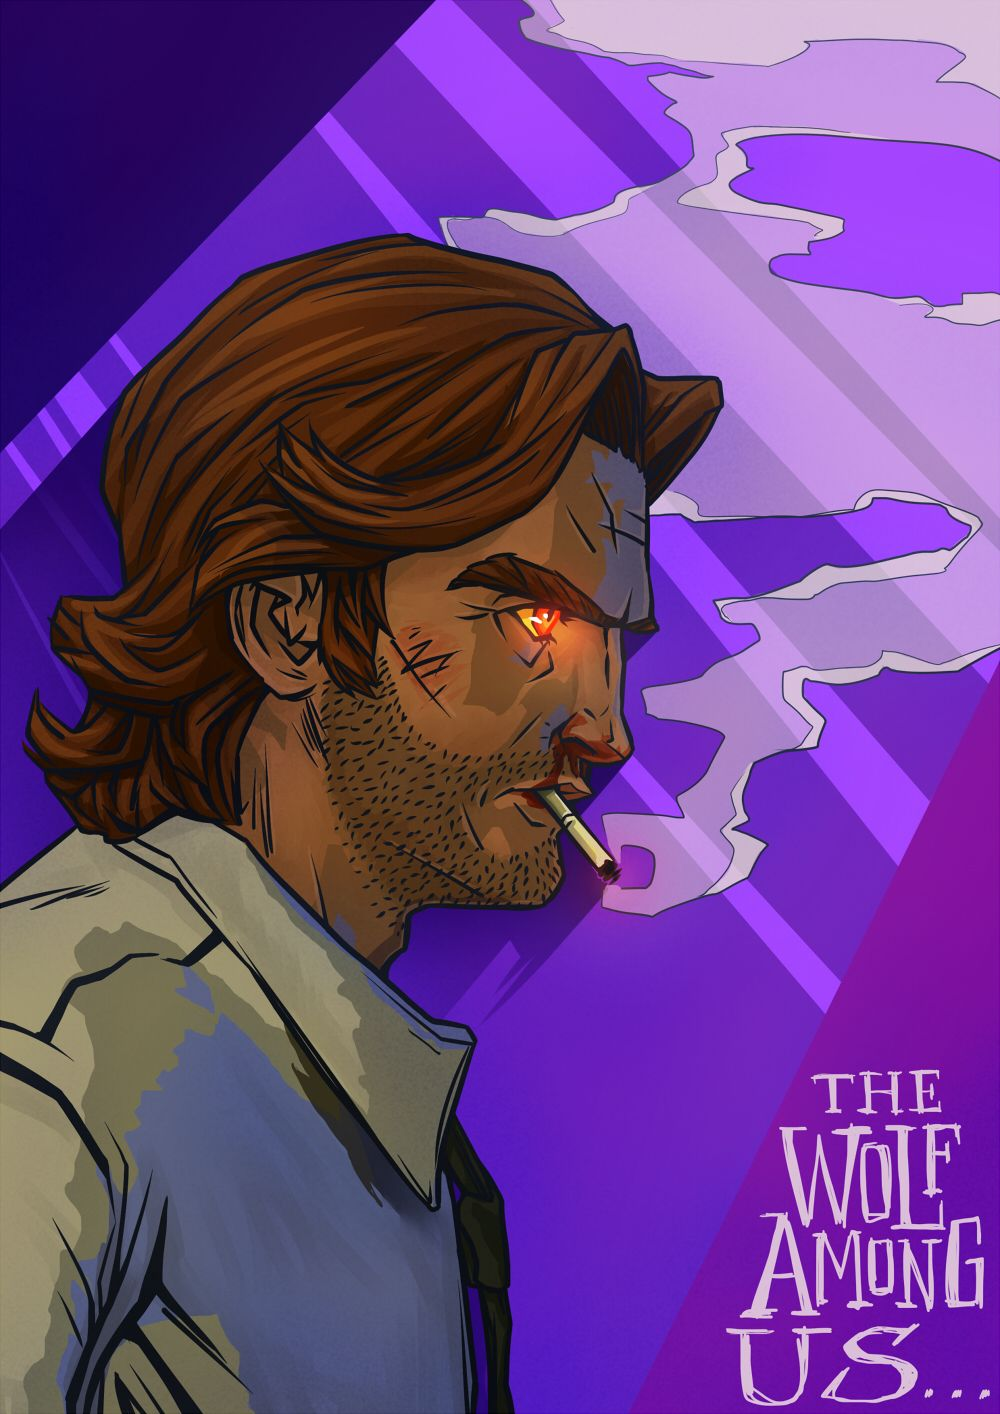 The Wolf Among Us Bigby Wolf By Kumagorochan On Deviantart The Wolf Among Us Wolf Werewolf Art